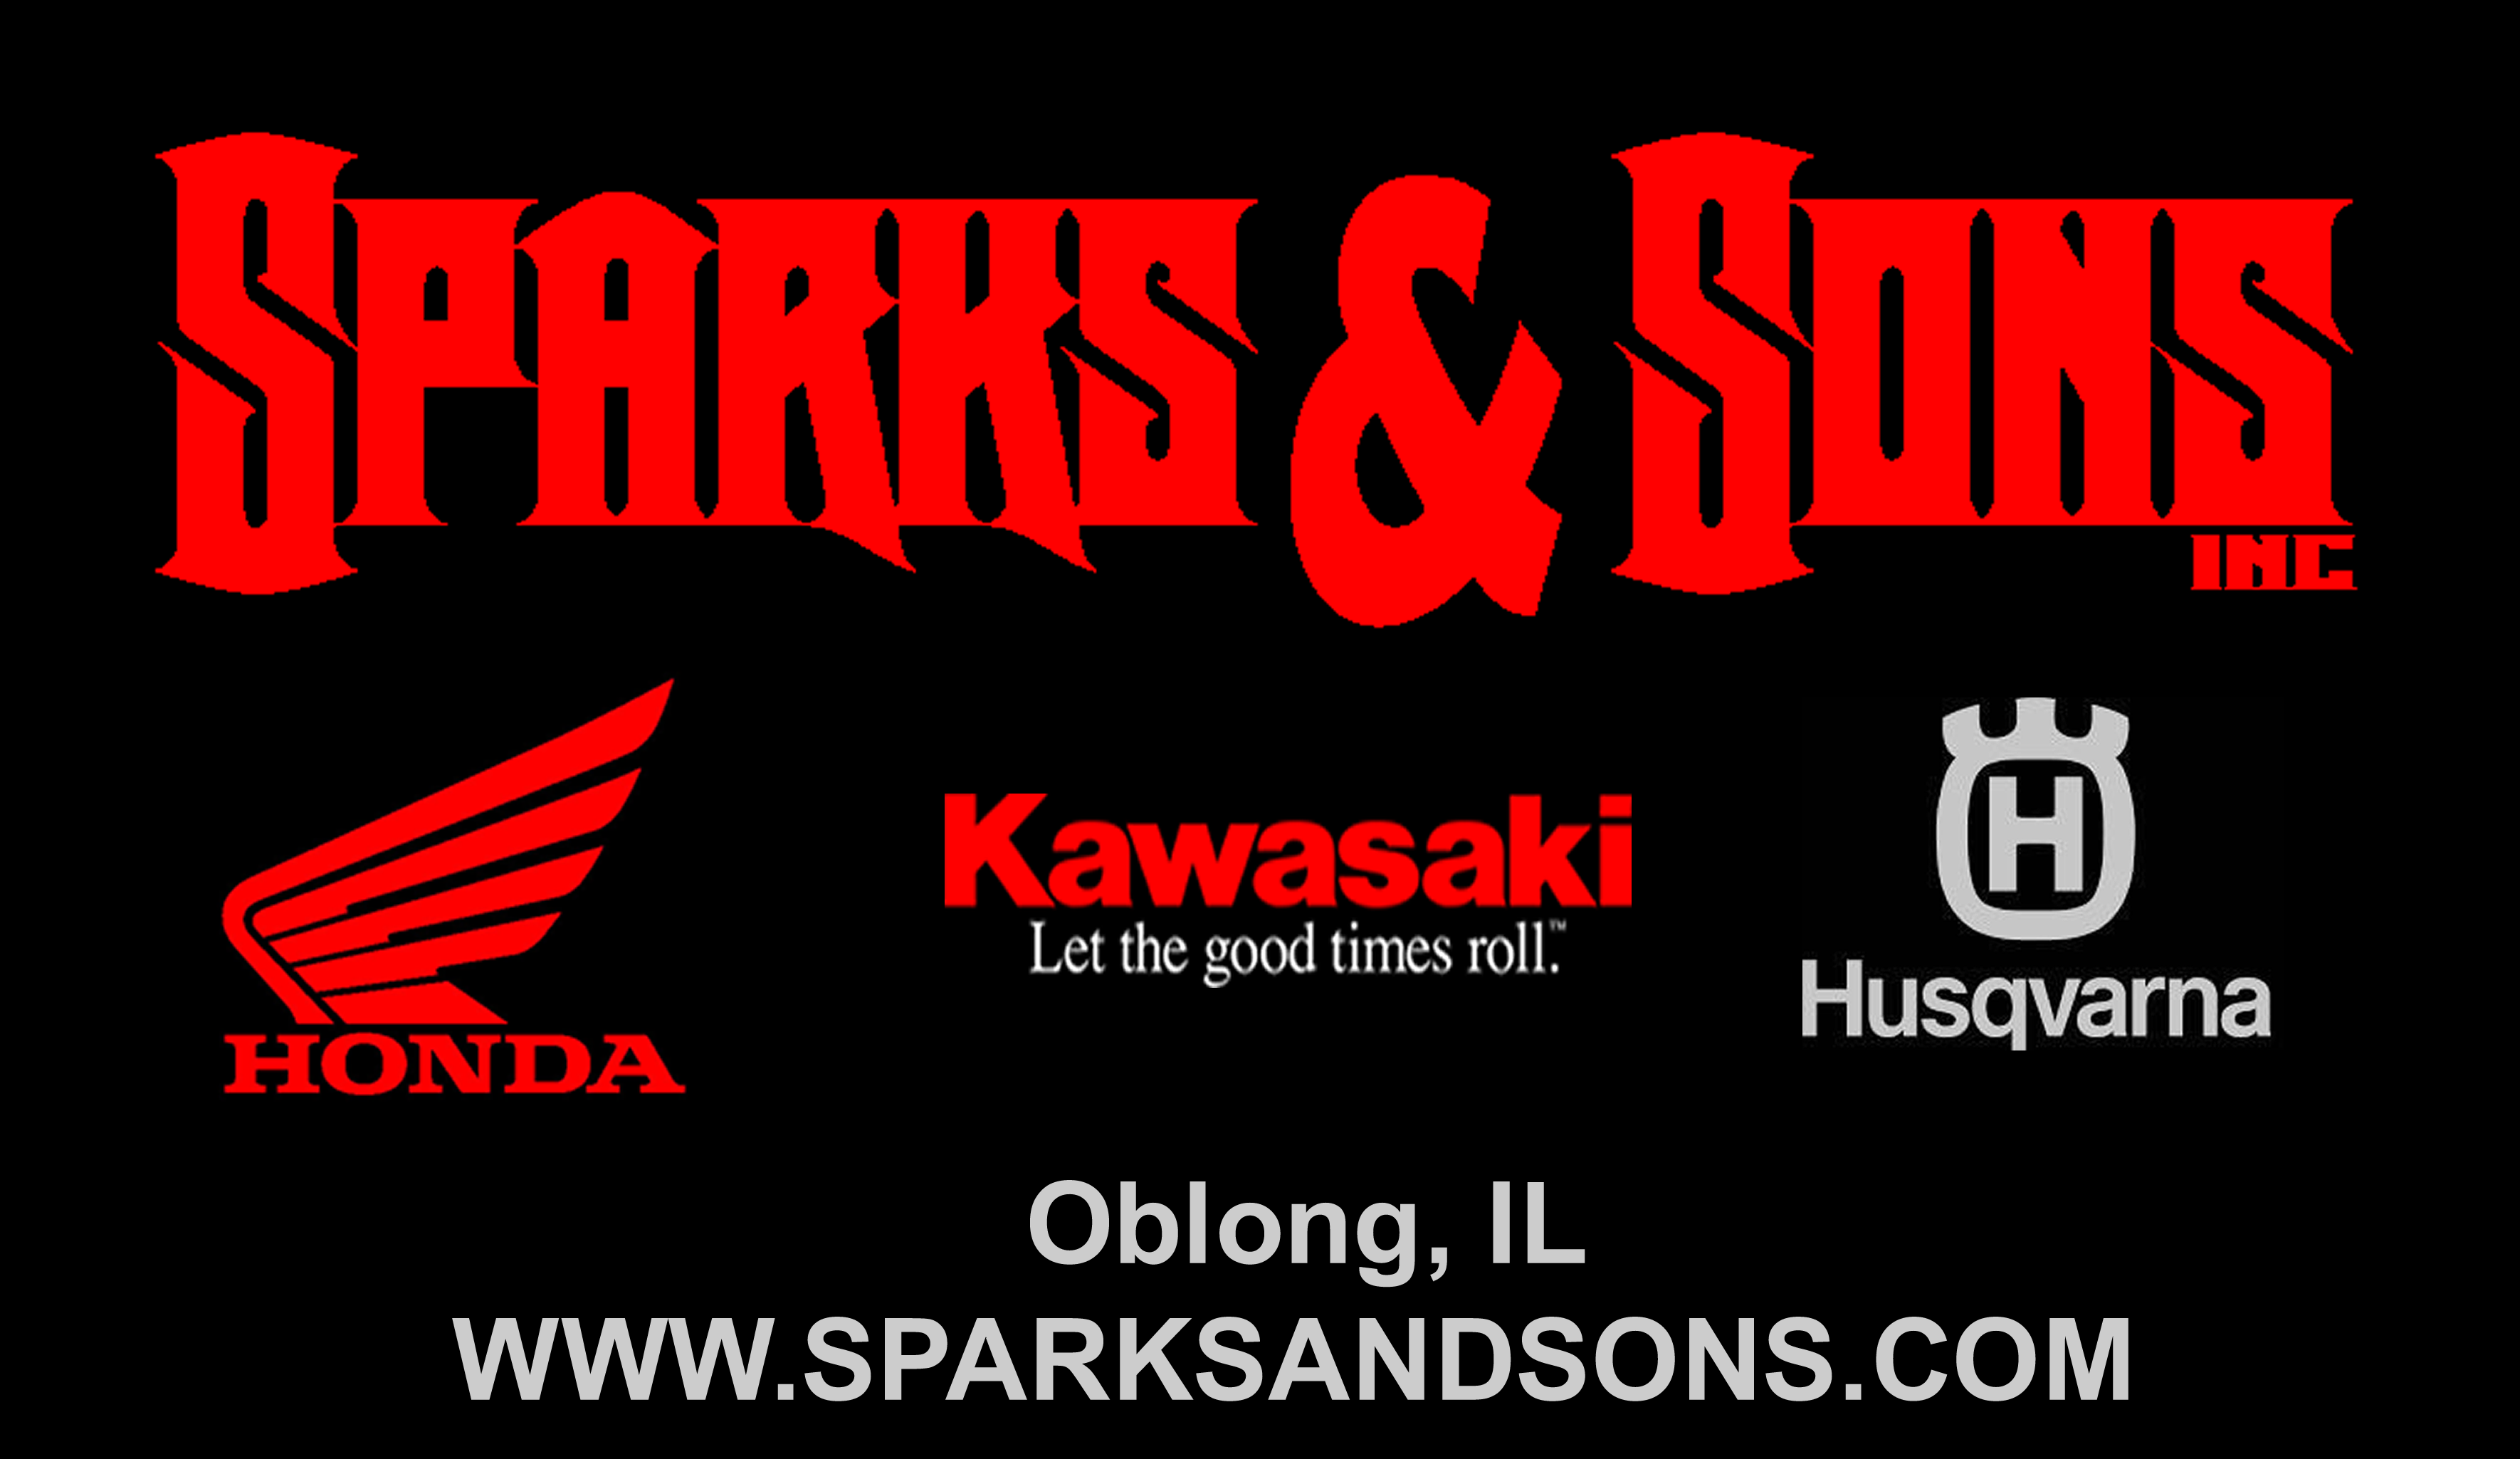 Sparks and Sons